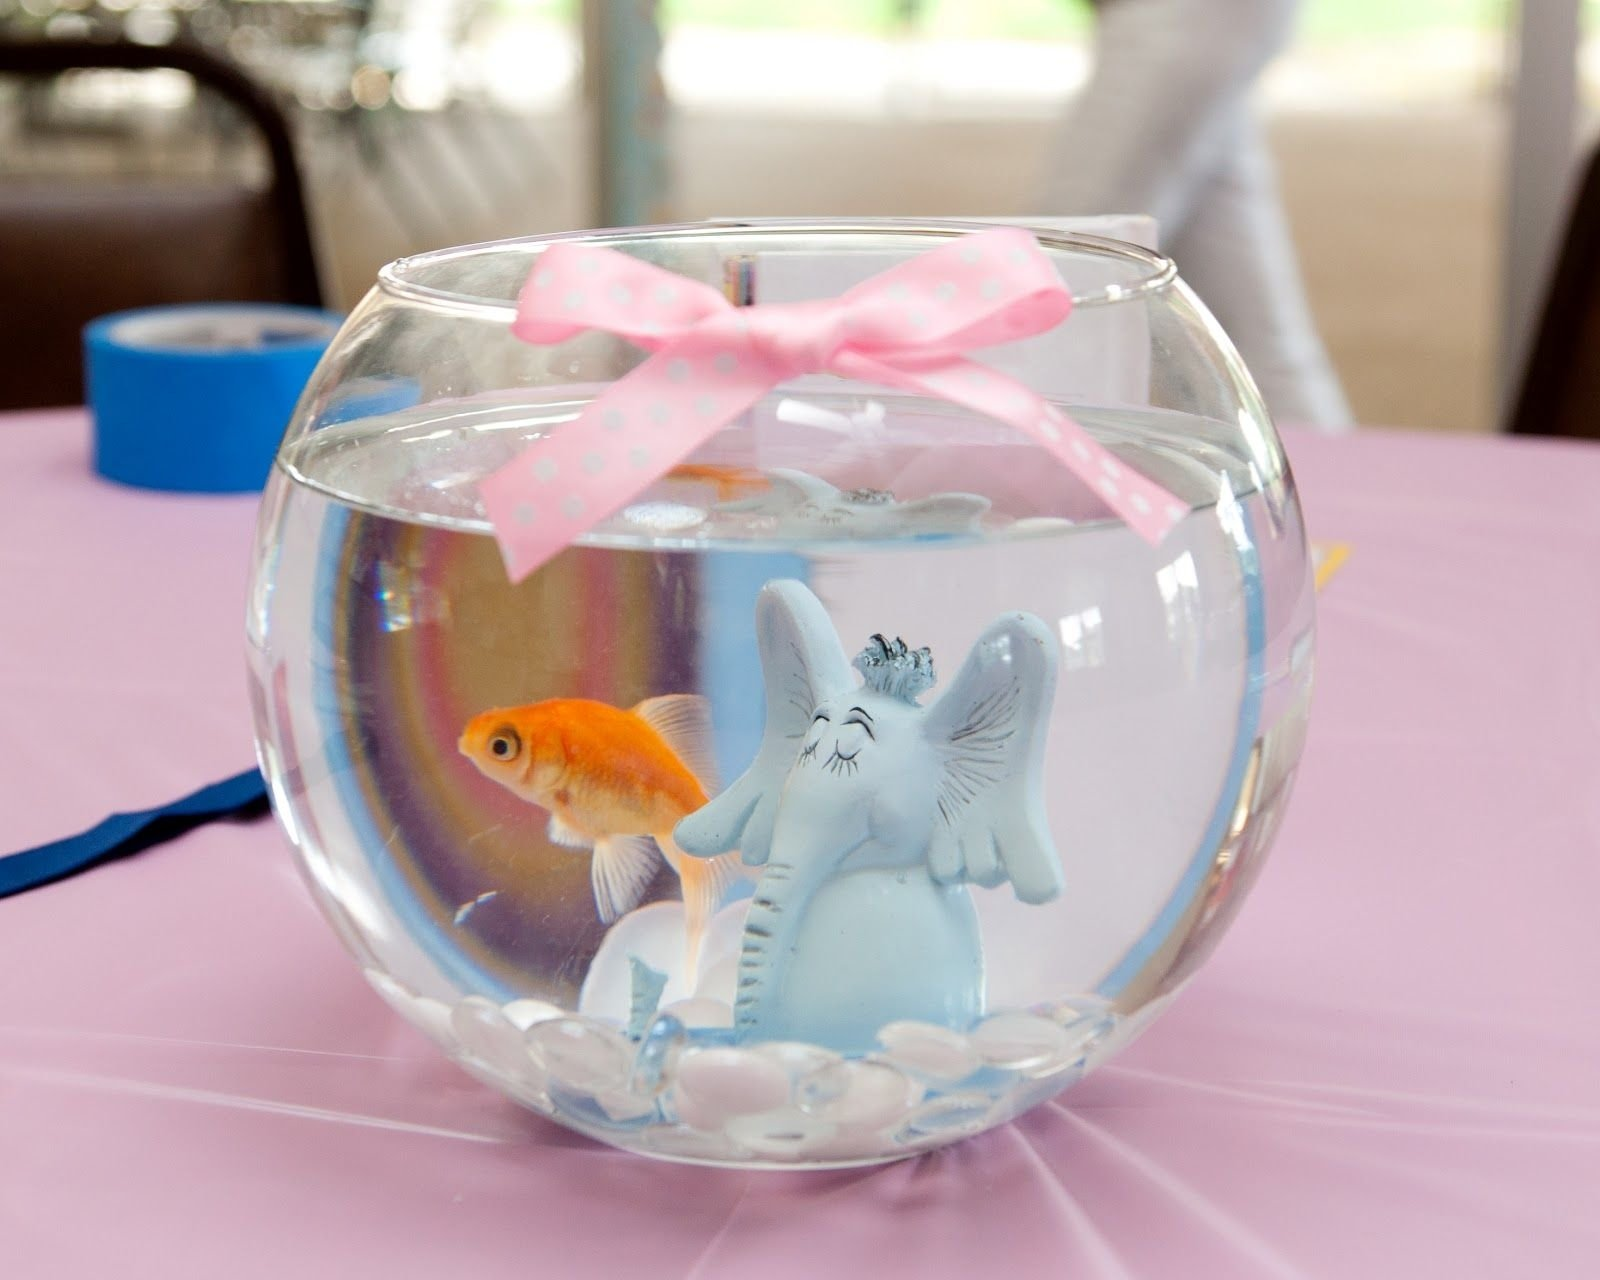 10 Stylish Centerpiece Ideas For Baby Shower dr suess theme baby shower centerpieces dr suess baby and babies 2020